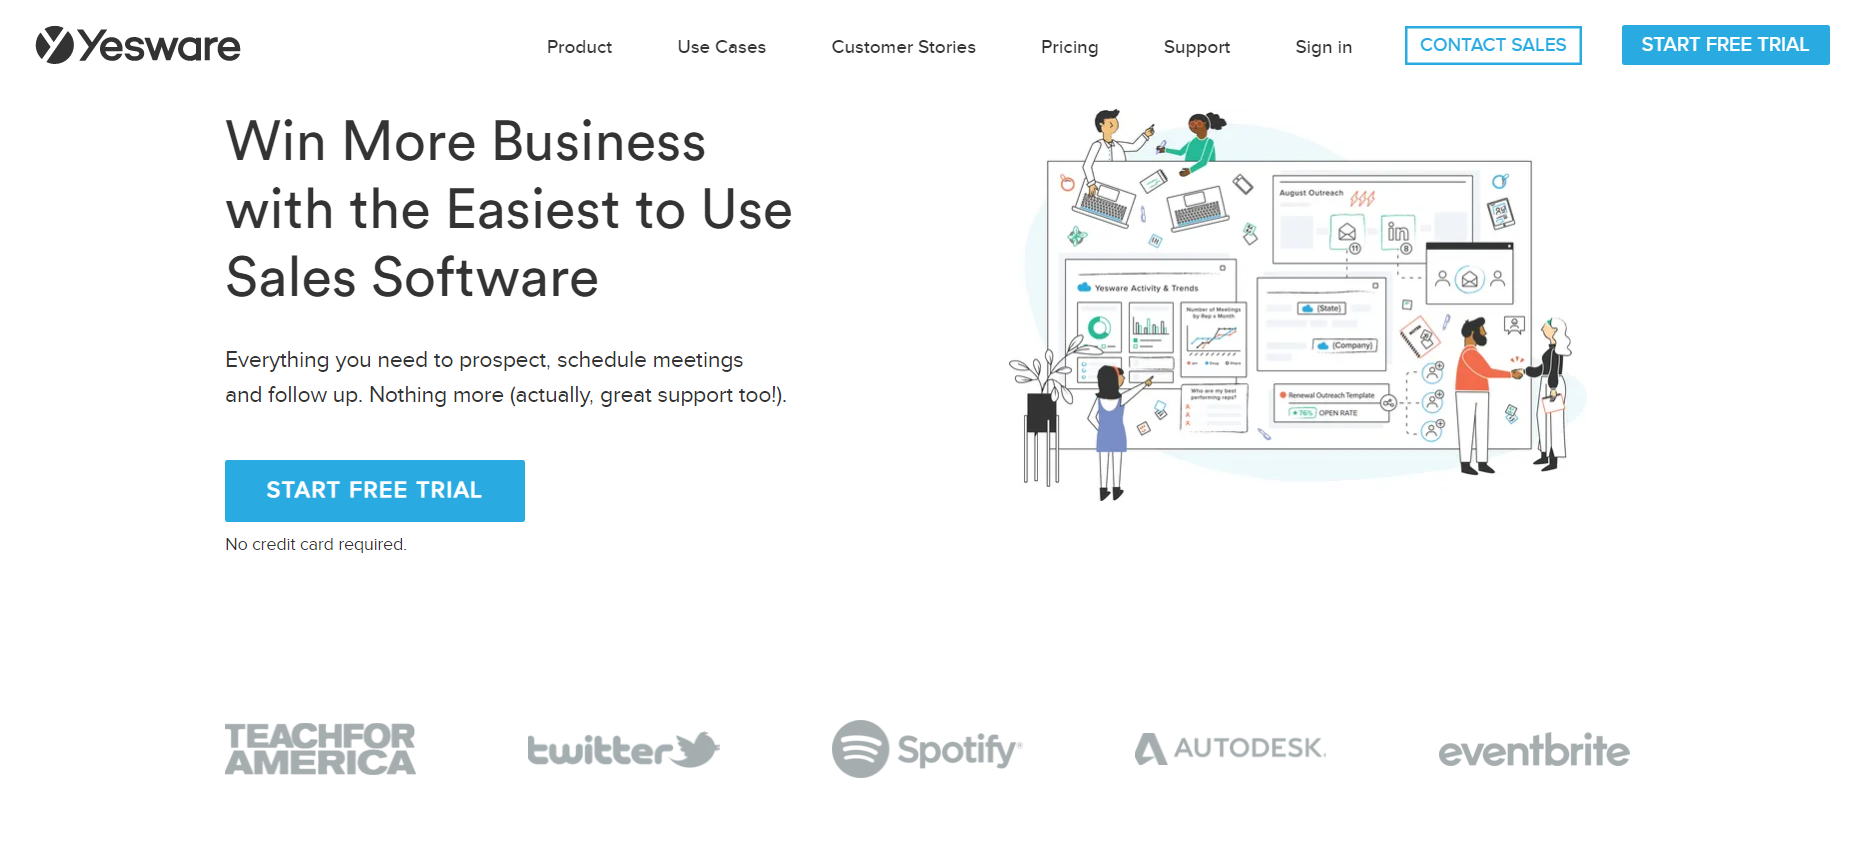 Yesware - Easiest Way to Use Sales Software